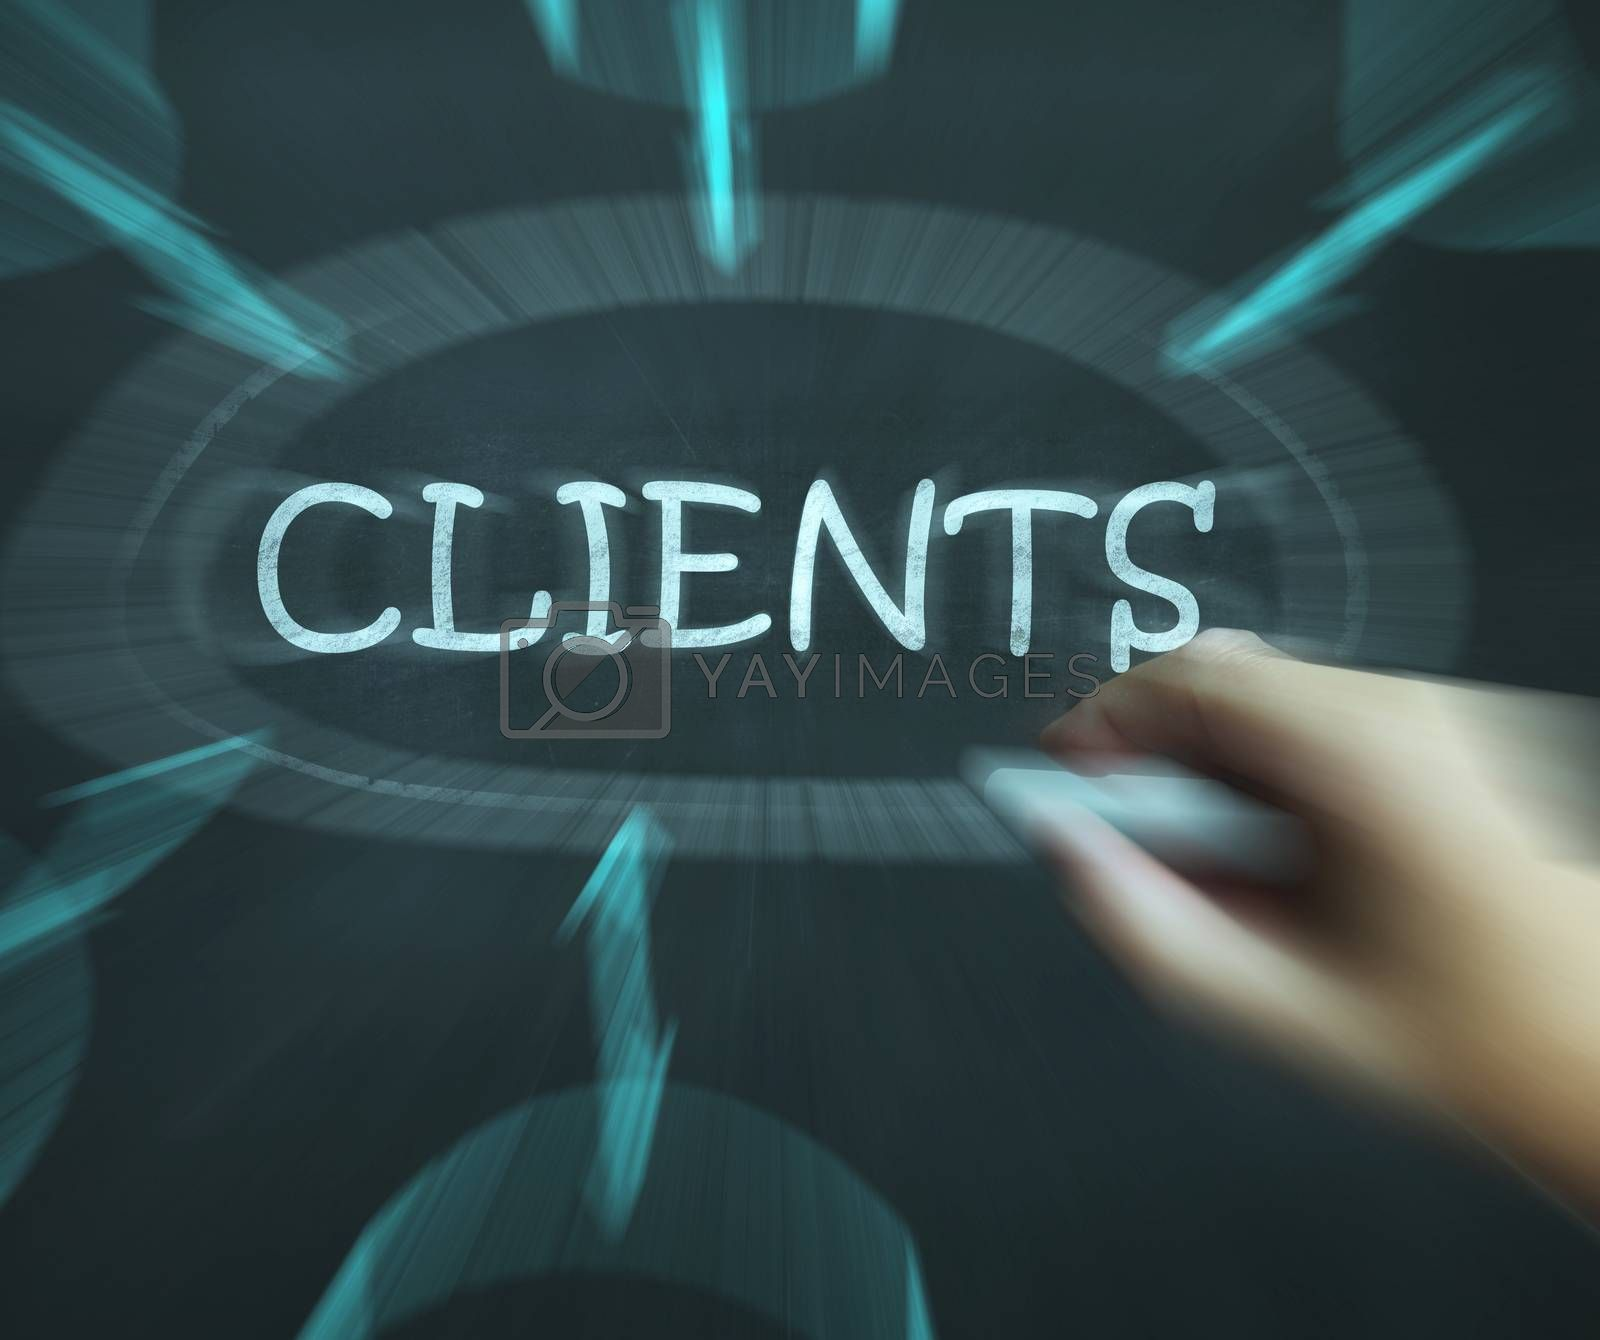 Clients Diagram Shows Customers Consumers And Clientele by stuartmiles